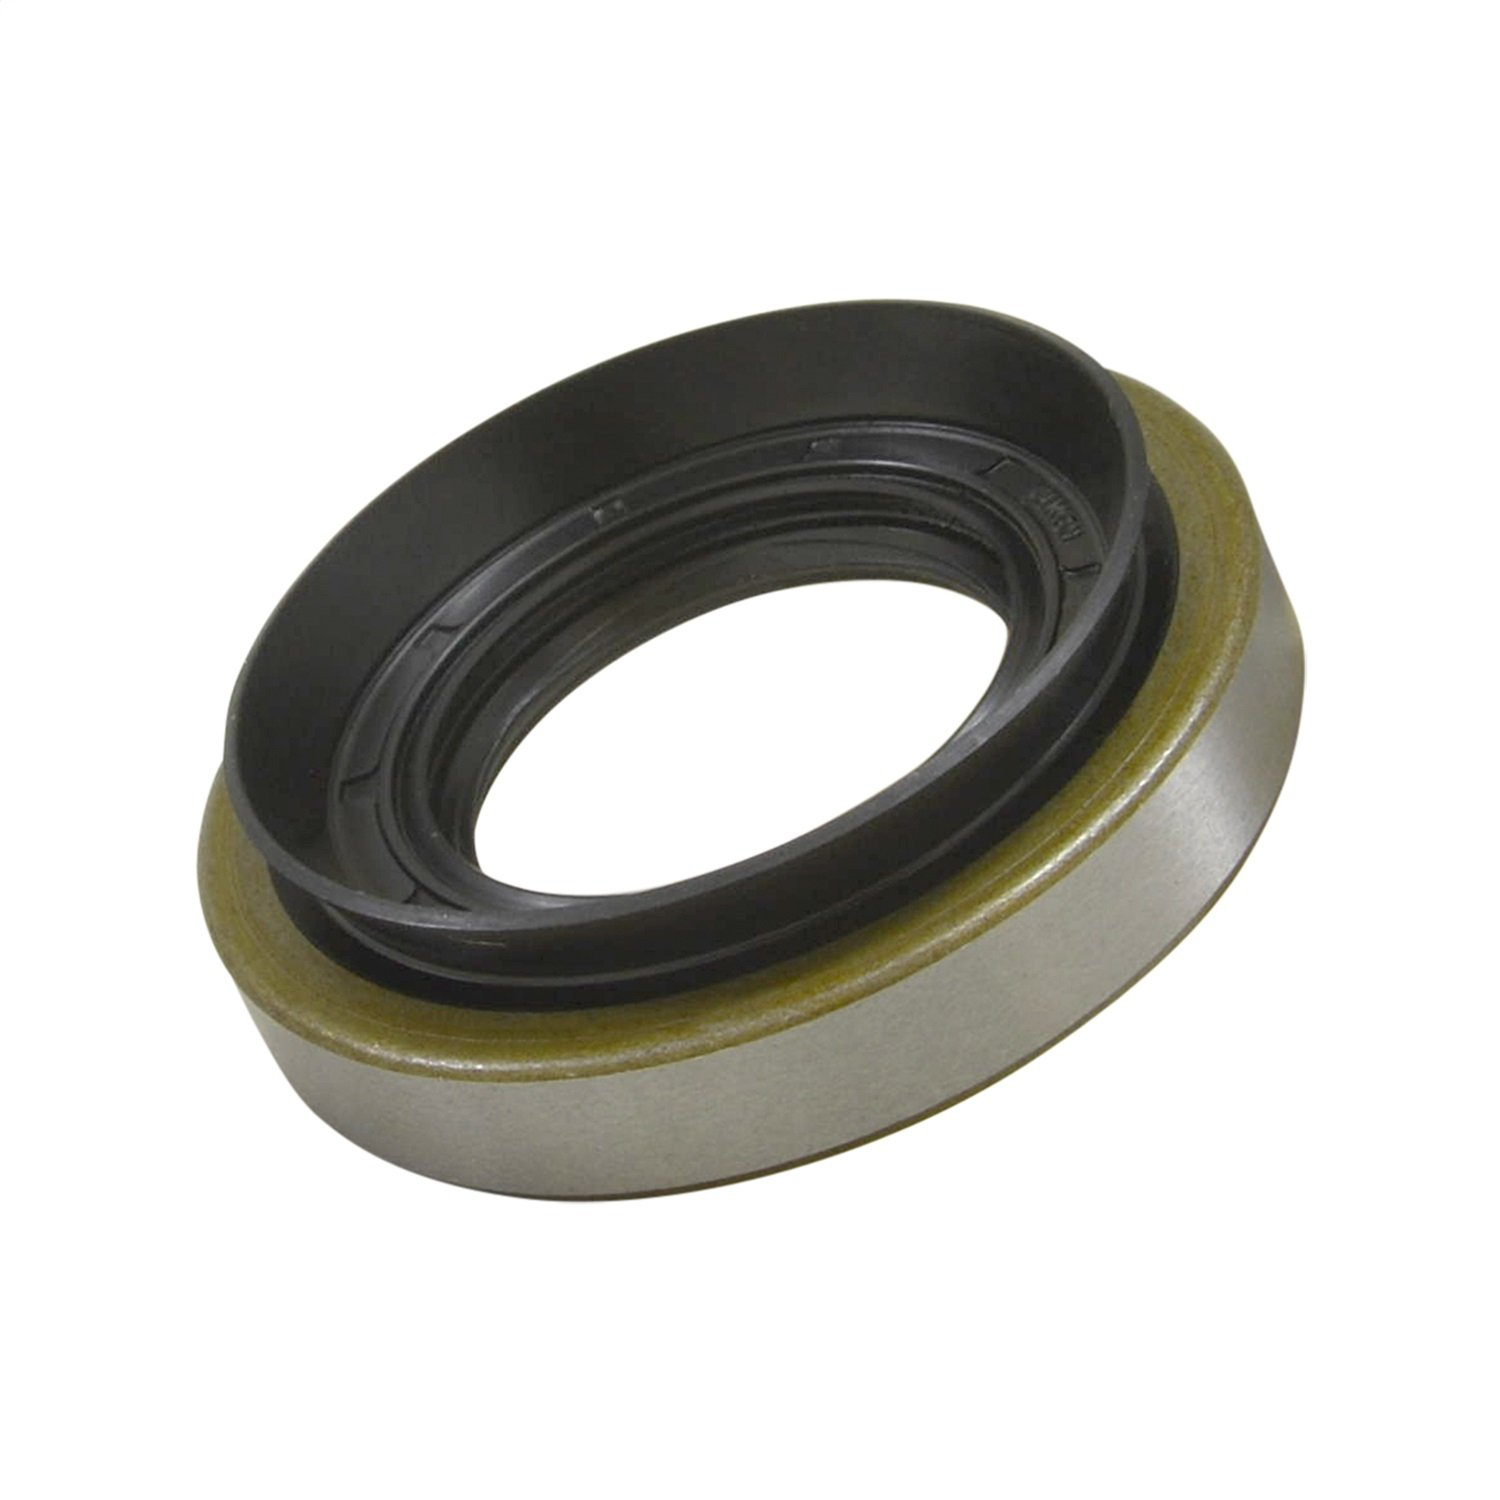 Yukon Gear & Axle (YMST1003) Axle Side Seal for Toyota 7.25 IFS Differential